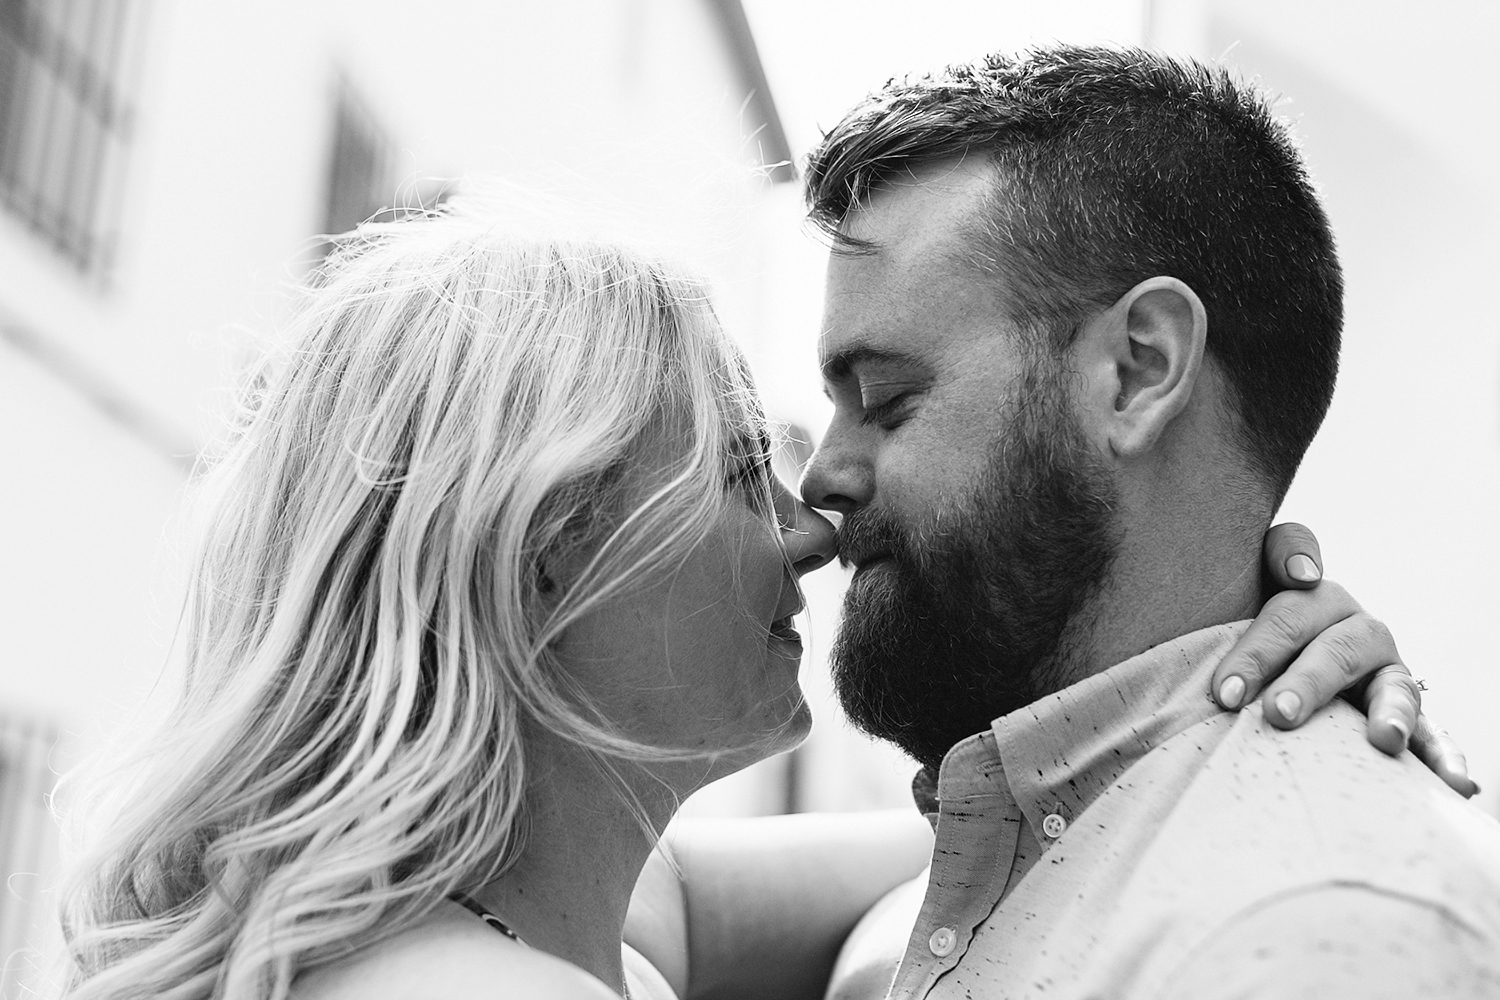 spain-toronto-wedding-photographer-ryanne-hollies-photography--intimate-candid-real-moment-between-couple-romantic-engagement-session-inspiration-alley-alleyway-using-light-epic-cool-trendy-details-floral-dress-moments-bw.jpg